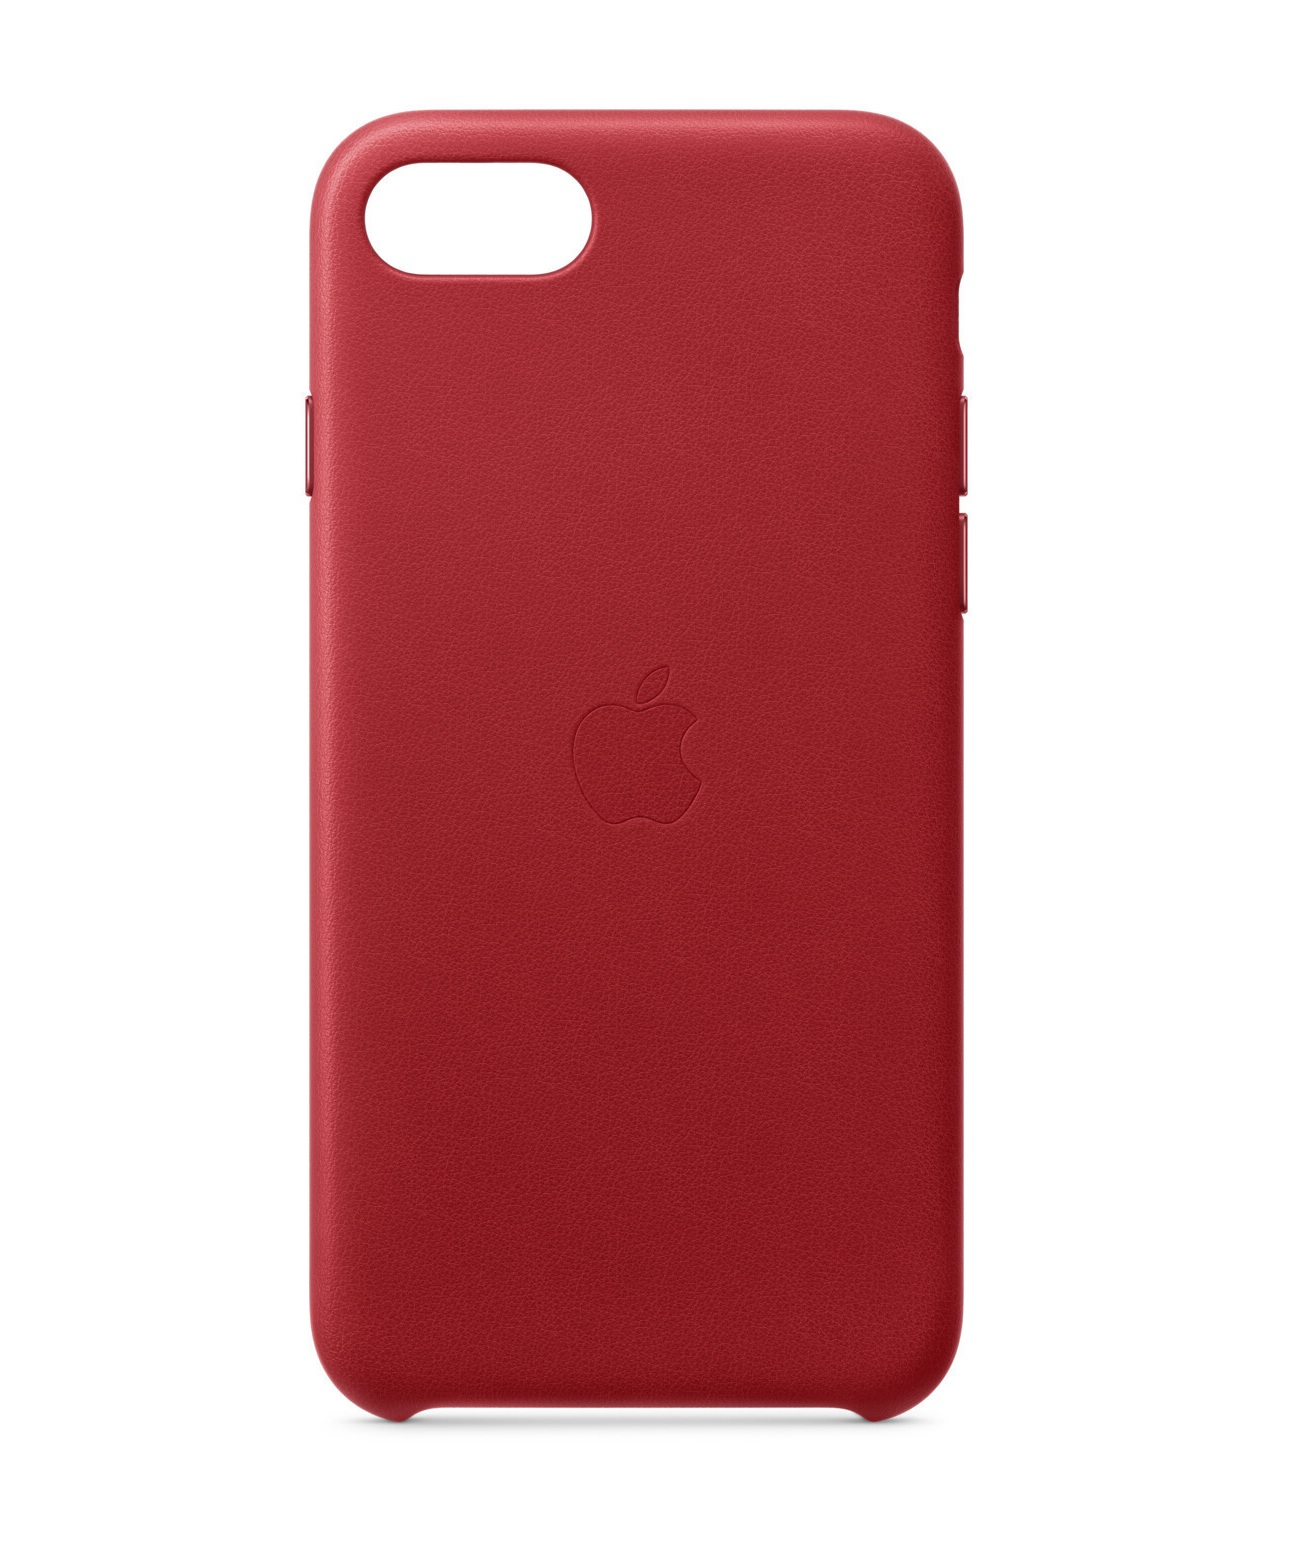 Apple iPhone SE Leather Case Product RED Rot